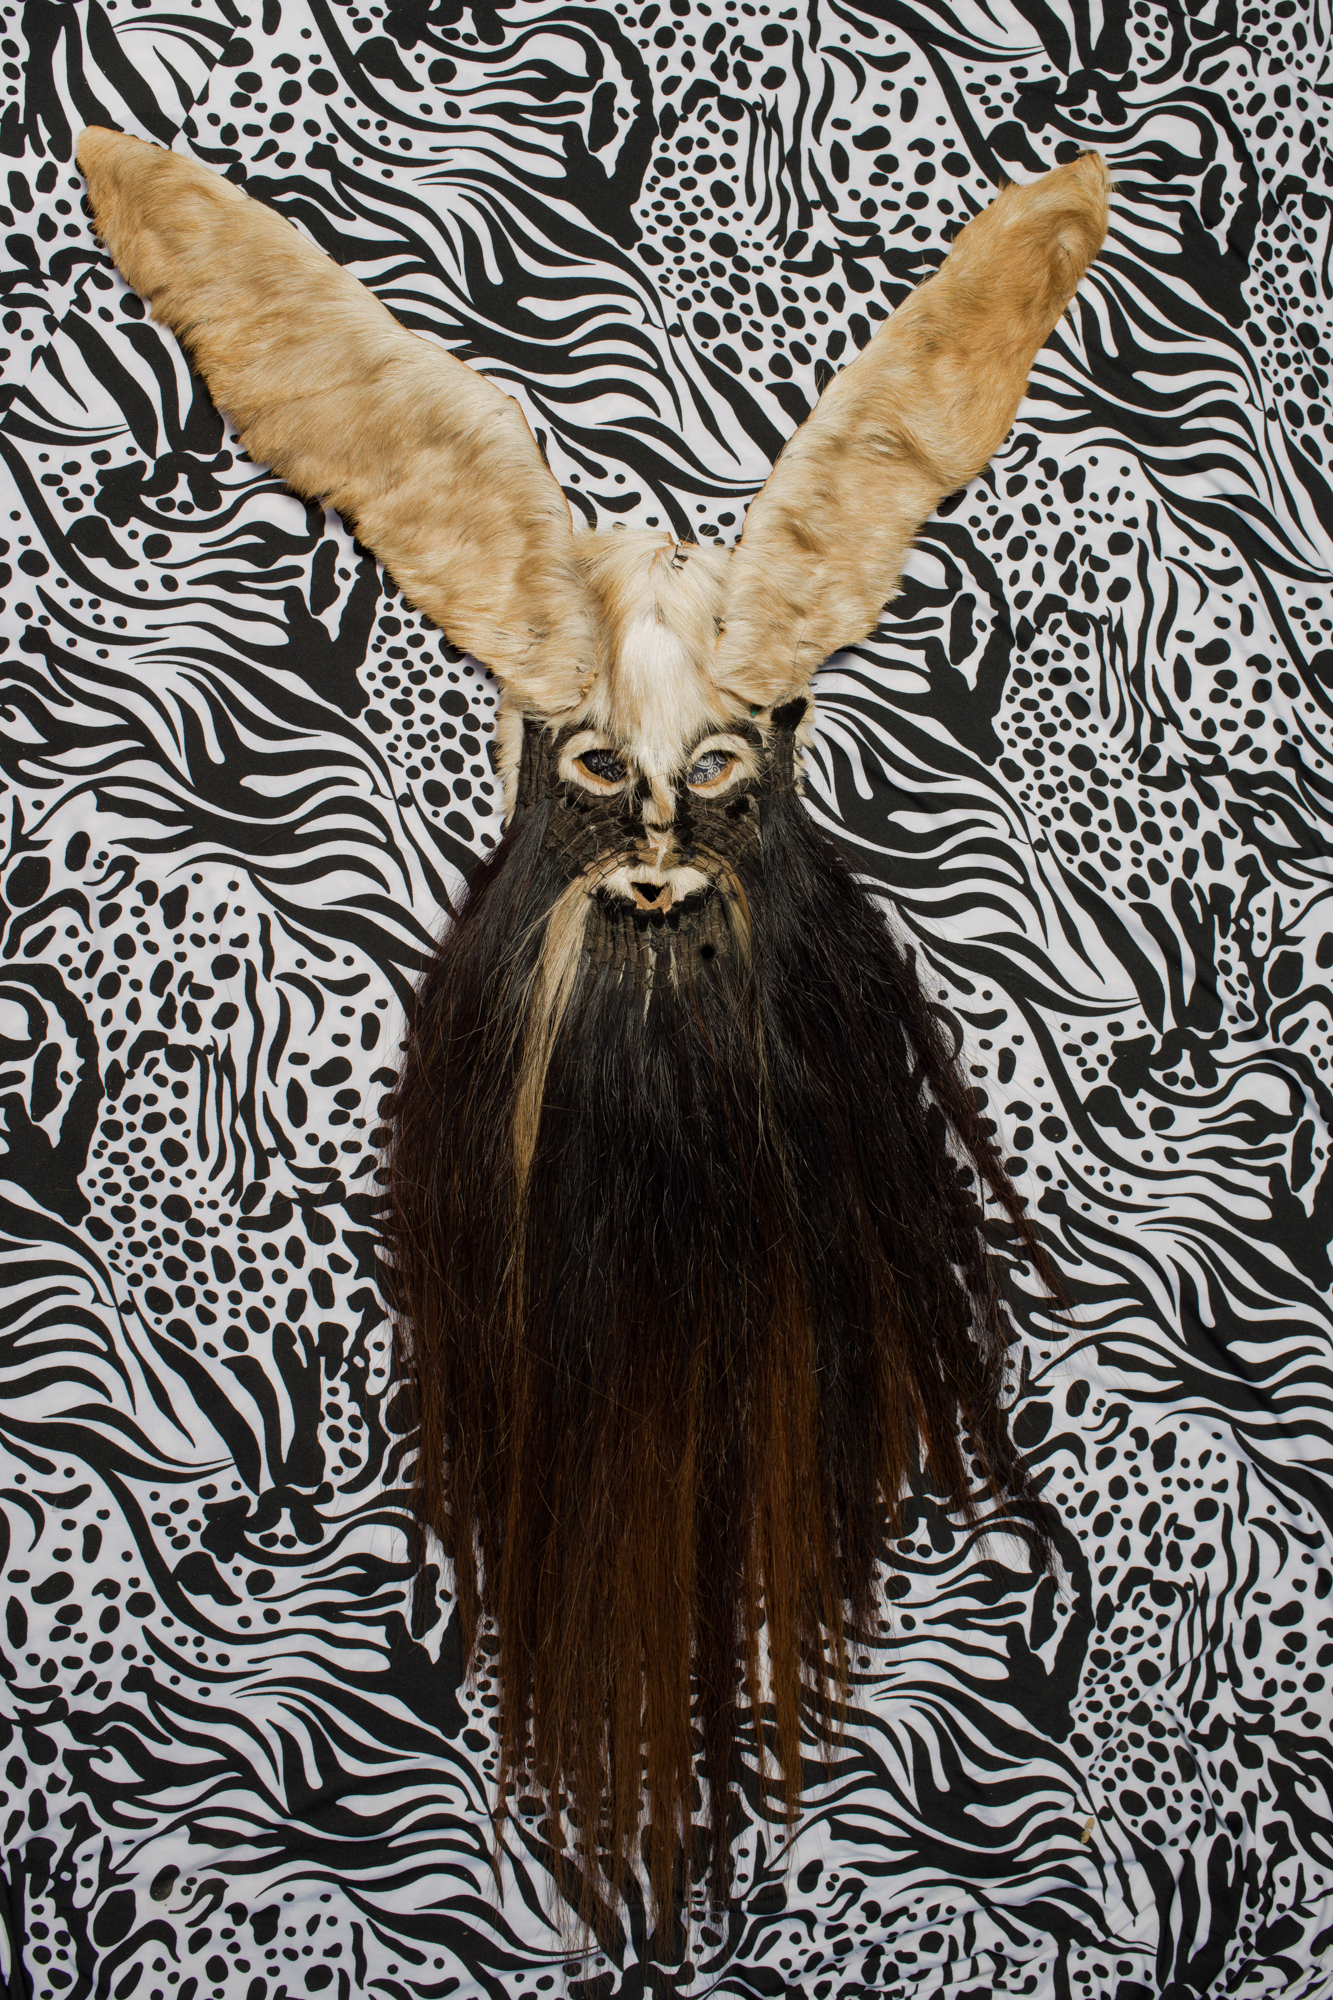 Detail of typical mask used during the devil's dance. The masks are usually made with painted cardboard, animal skin, donkey or dog jaws, horsehair manes, and deer horns. They are handmade by local artisans and a mask can cost around 250 USD. Image by Luján Agusti.